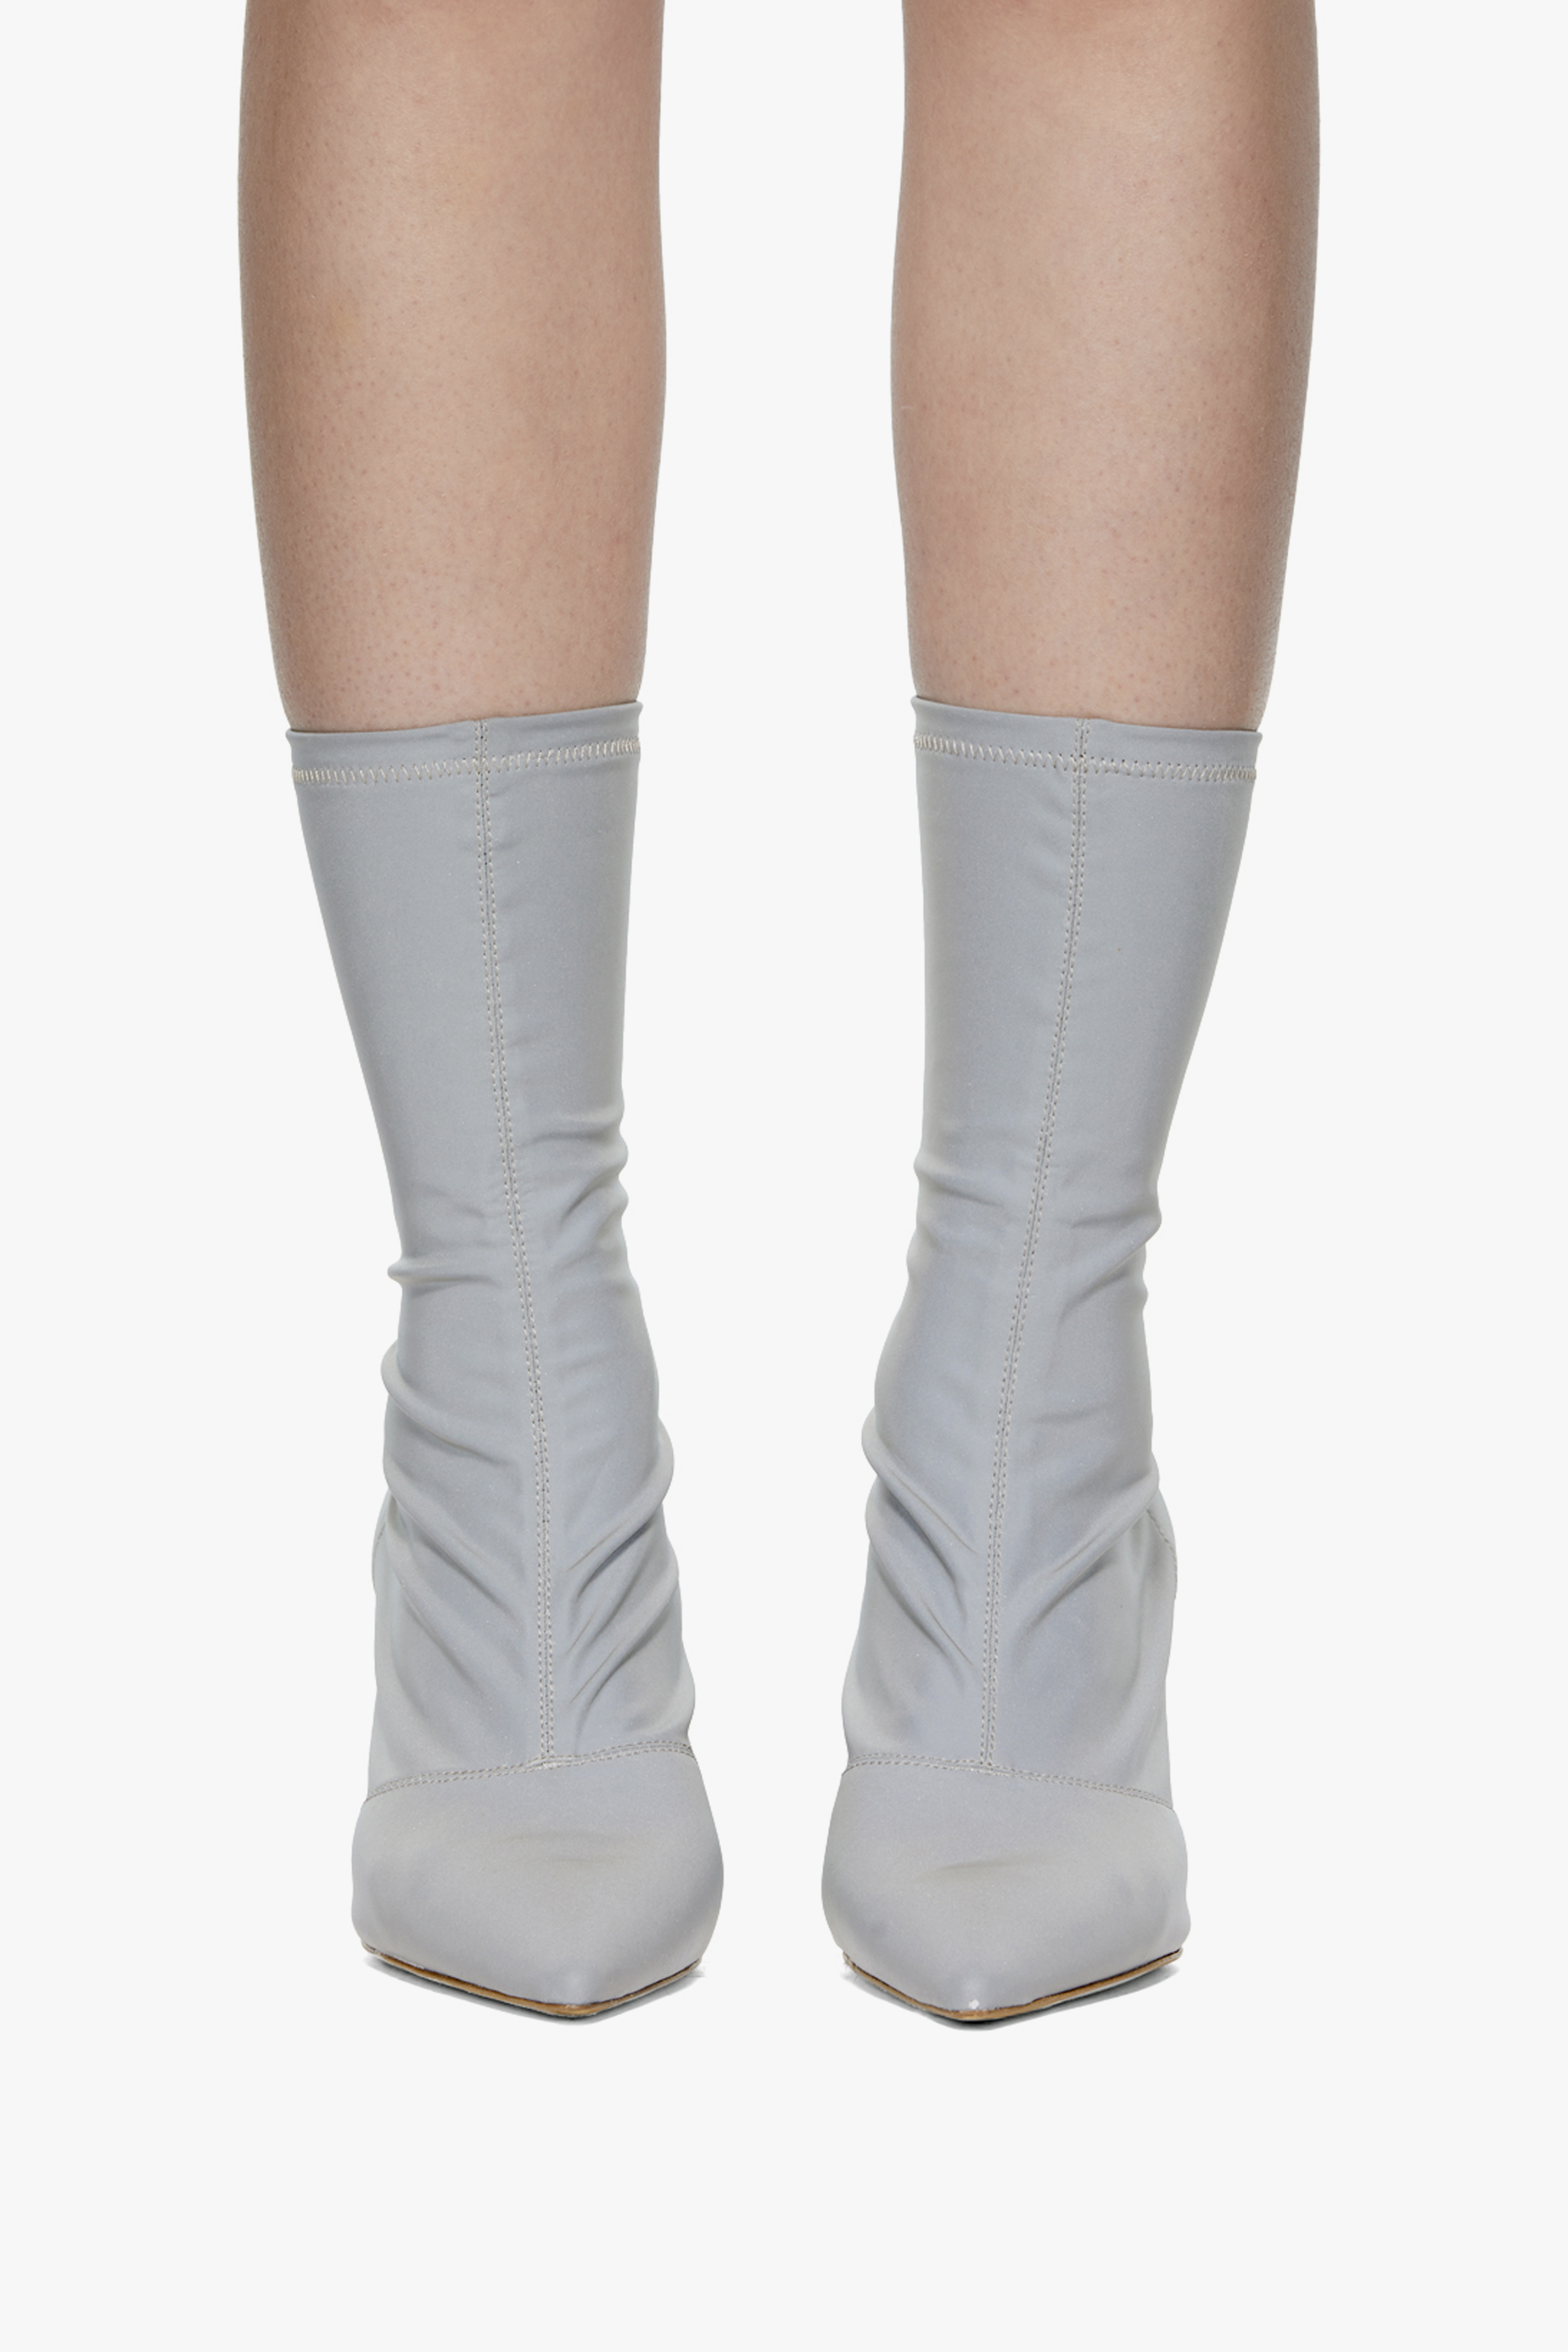 YEEZY Silver Reflective Ankle Boots